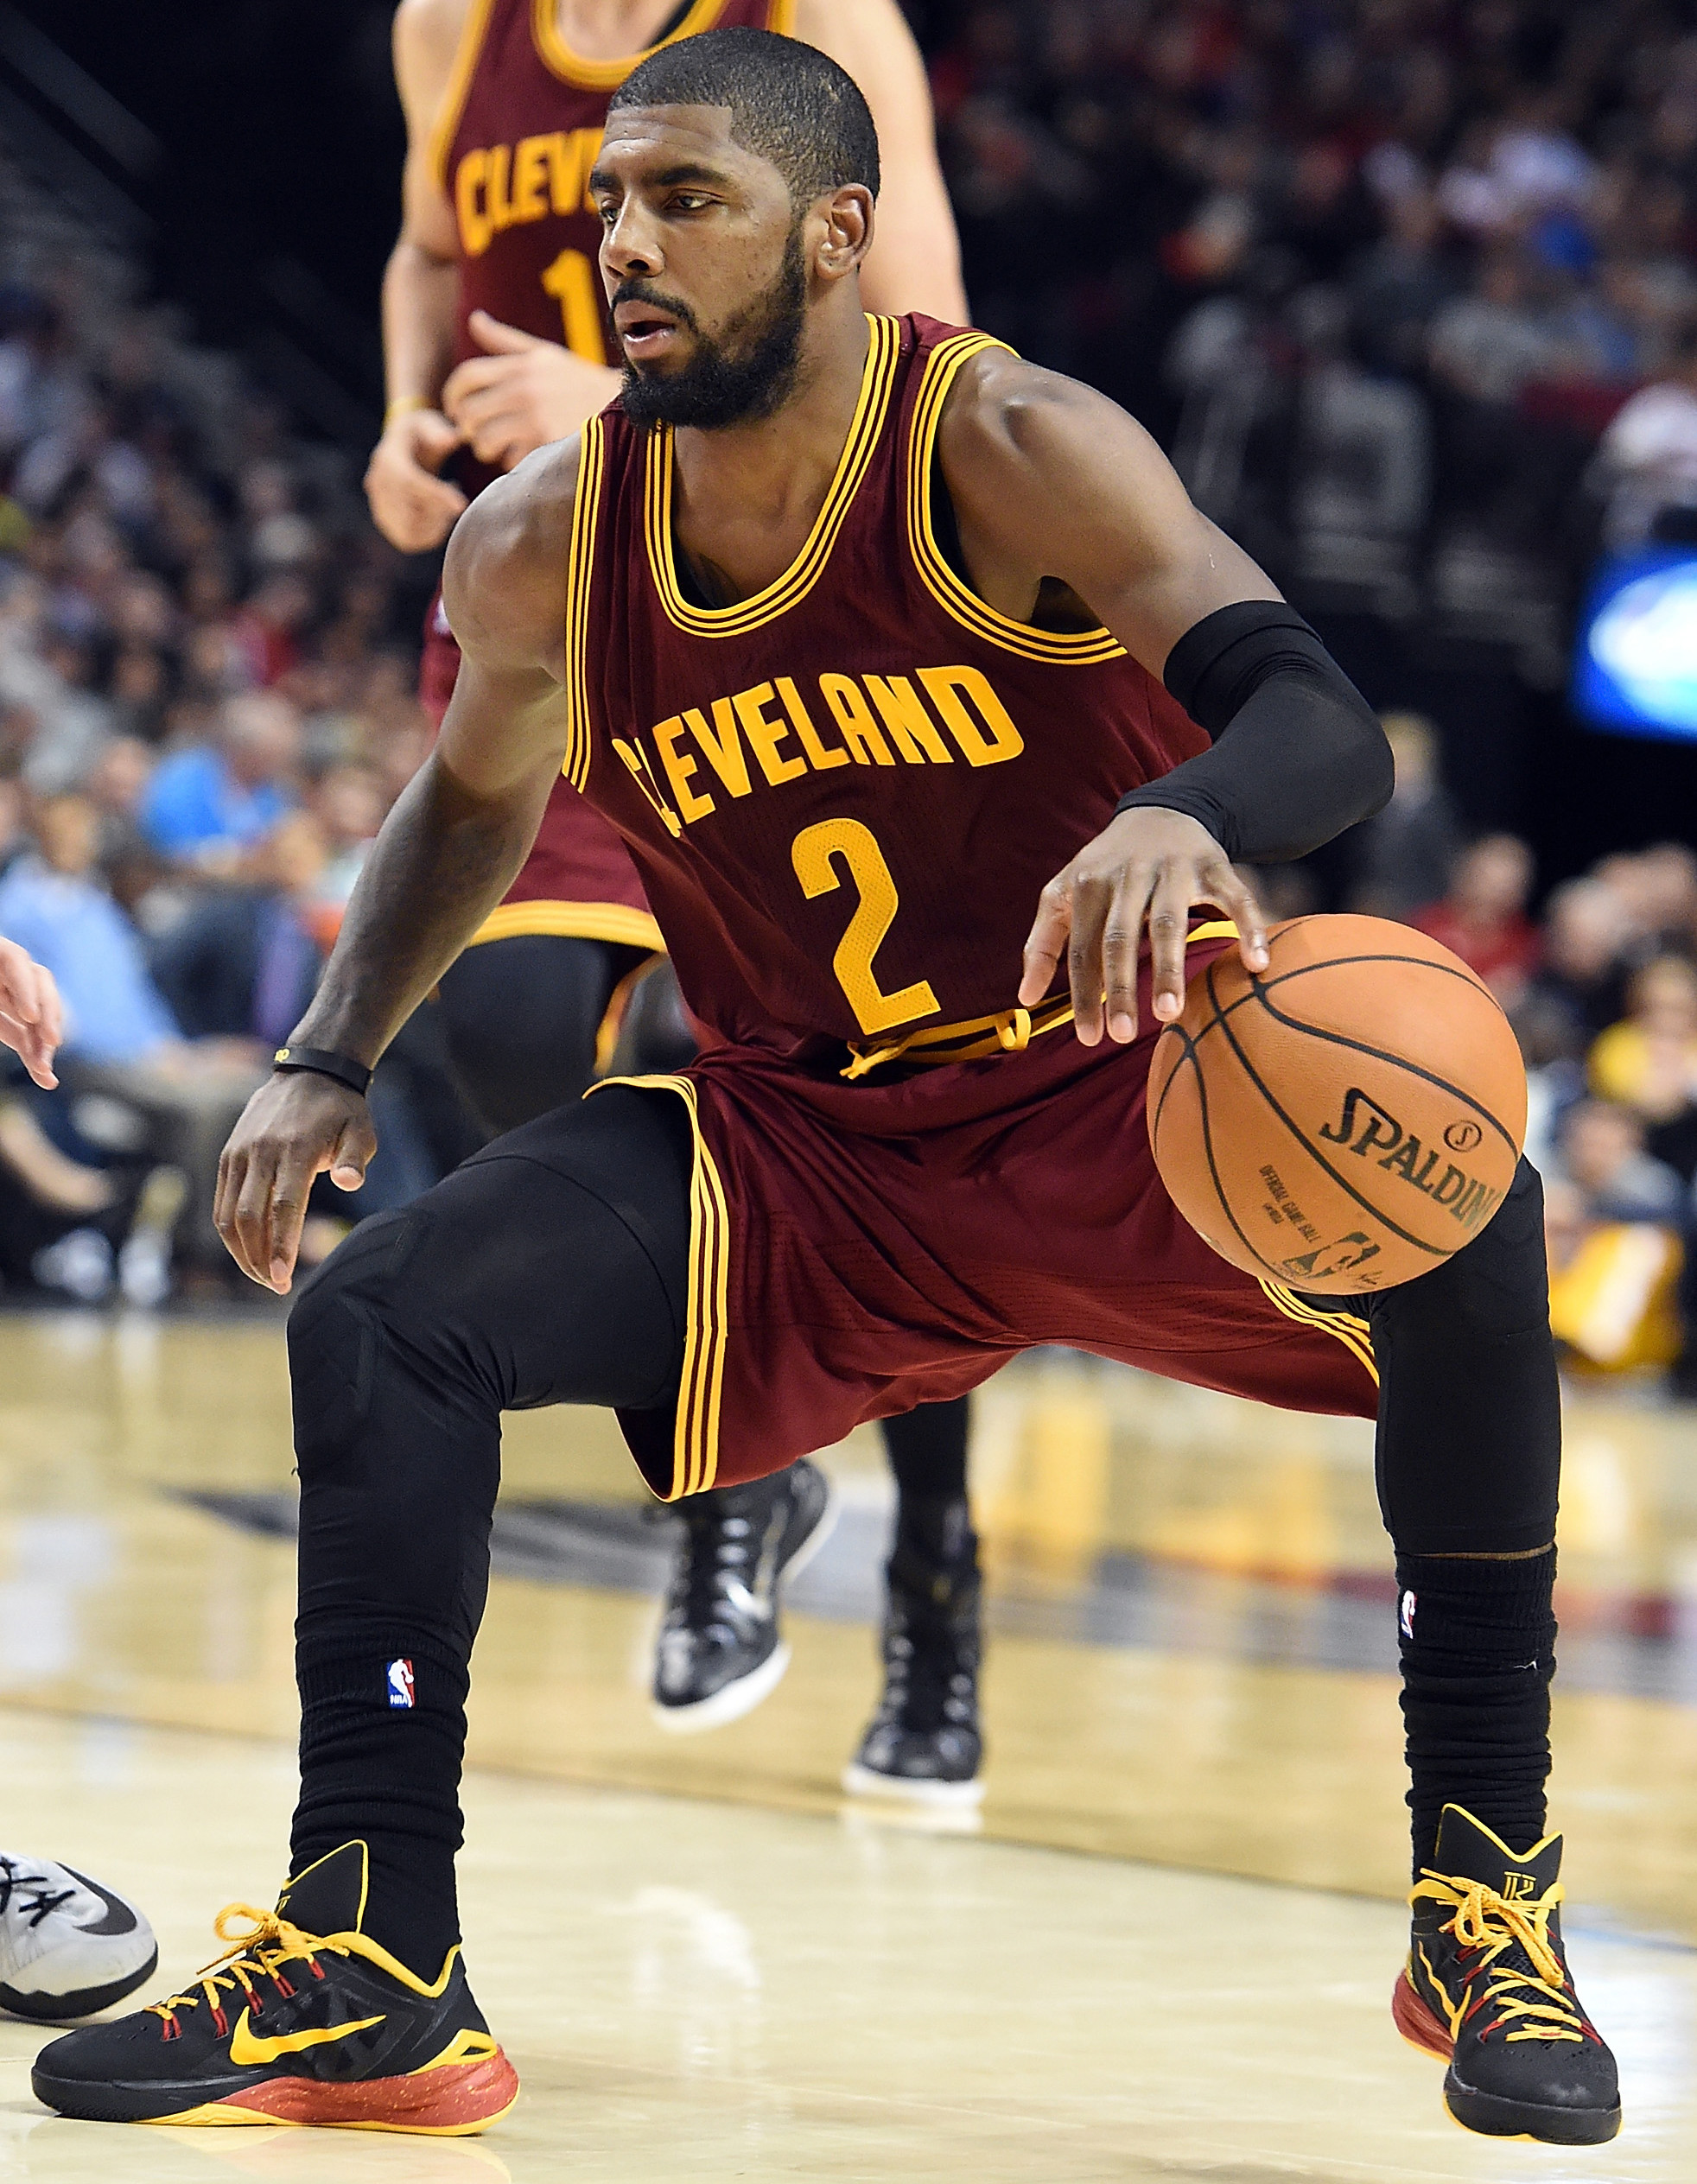 Kyrie Irving Wallpapers (74+ images) Kyrie Irving Wallpaper Download